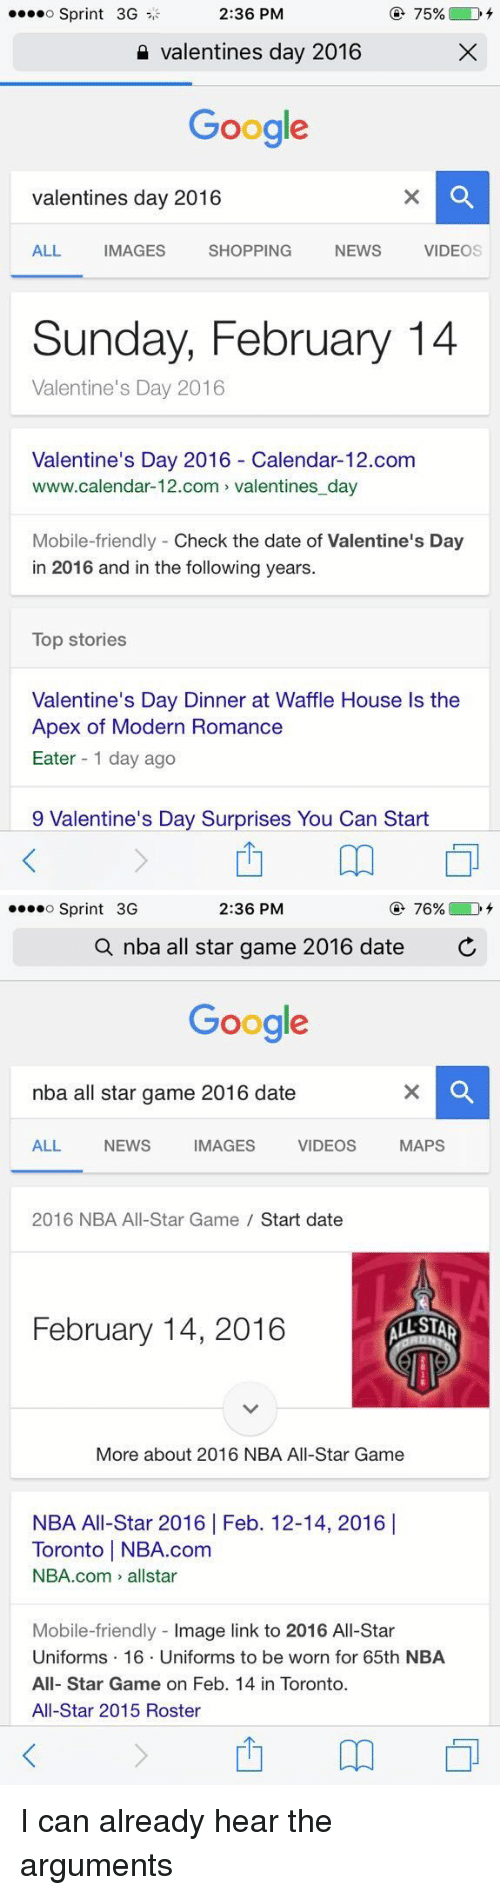 nba all star 2016: 75%  o Sprint 3G  2:36 PM  valentines day 2016  Google  valentines day 2016  ALL  MAGES  SHOPPING  NEWS  VIDEO  Sunday, February 14  Valentine's Day 2016  Valentine's Day 2016 Calendar-12.com  www.calendar-12.com valentines day  Mobile-friendly Check the date of Valentine's Day  in 2016 and in the following years.  Top stories  Valentine's Day Dinner at Waffle House ls the  Apex of Modern Romance  Eater 1 day ago  9 Valentine's Day Surprises You Can Start   2:36 PM  76%  o Sprint 3G  a nba all star game 2016 date  C  Google  nba all star  game 2016 date  MAPS  ALL  NEWS IMAGES VIDEOS  2016 NBA All-Star Game Start date  February 14, 2016  More about 2016 NBA All-Star Game  NBA All-Star 2016 l Feb. 12-14, 2016 I  Toronto l NBA.com  NBA.com allstar  Mobile-friendly  mage link to 2016 All-Star  Uniforms 16. Uniforms to be worn for 65th NBA  All-Star Game on Feb. 14 in Toronto.  All-Star 2015 Roster I can already hear the arguments